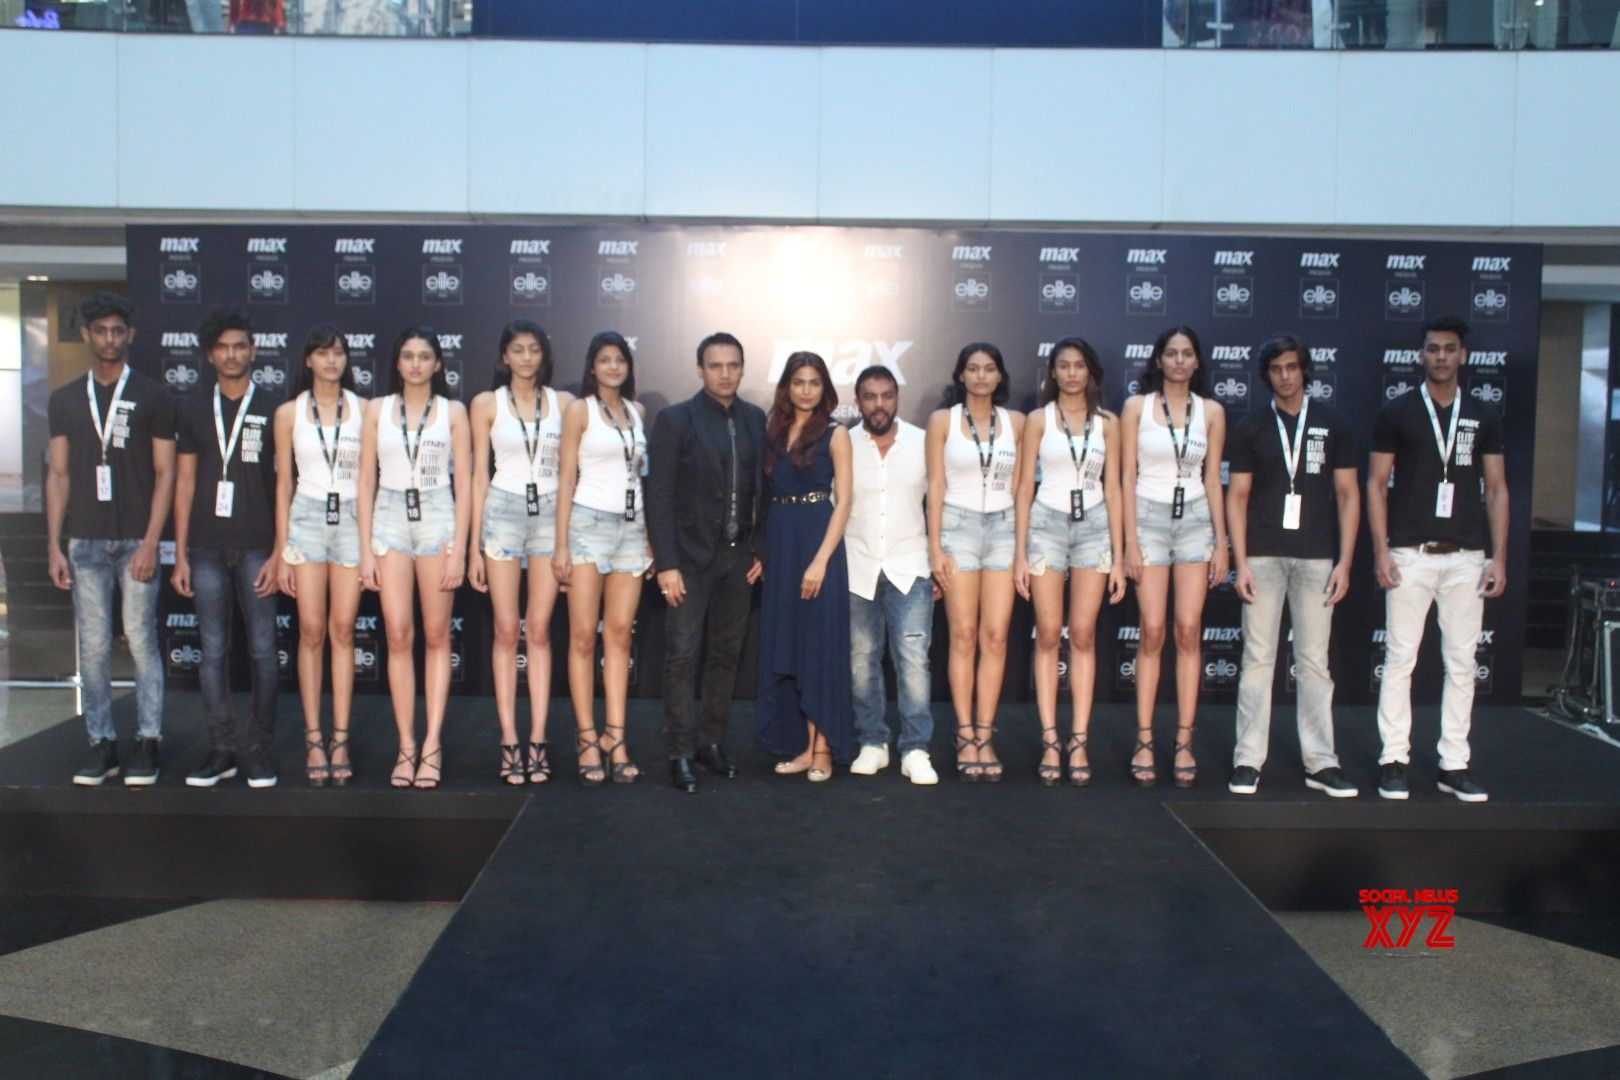 Mumbai: Elite Model Look India 2017 auditions